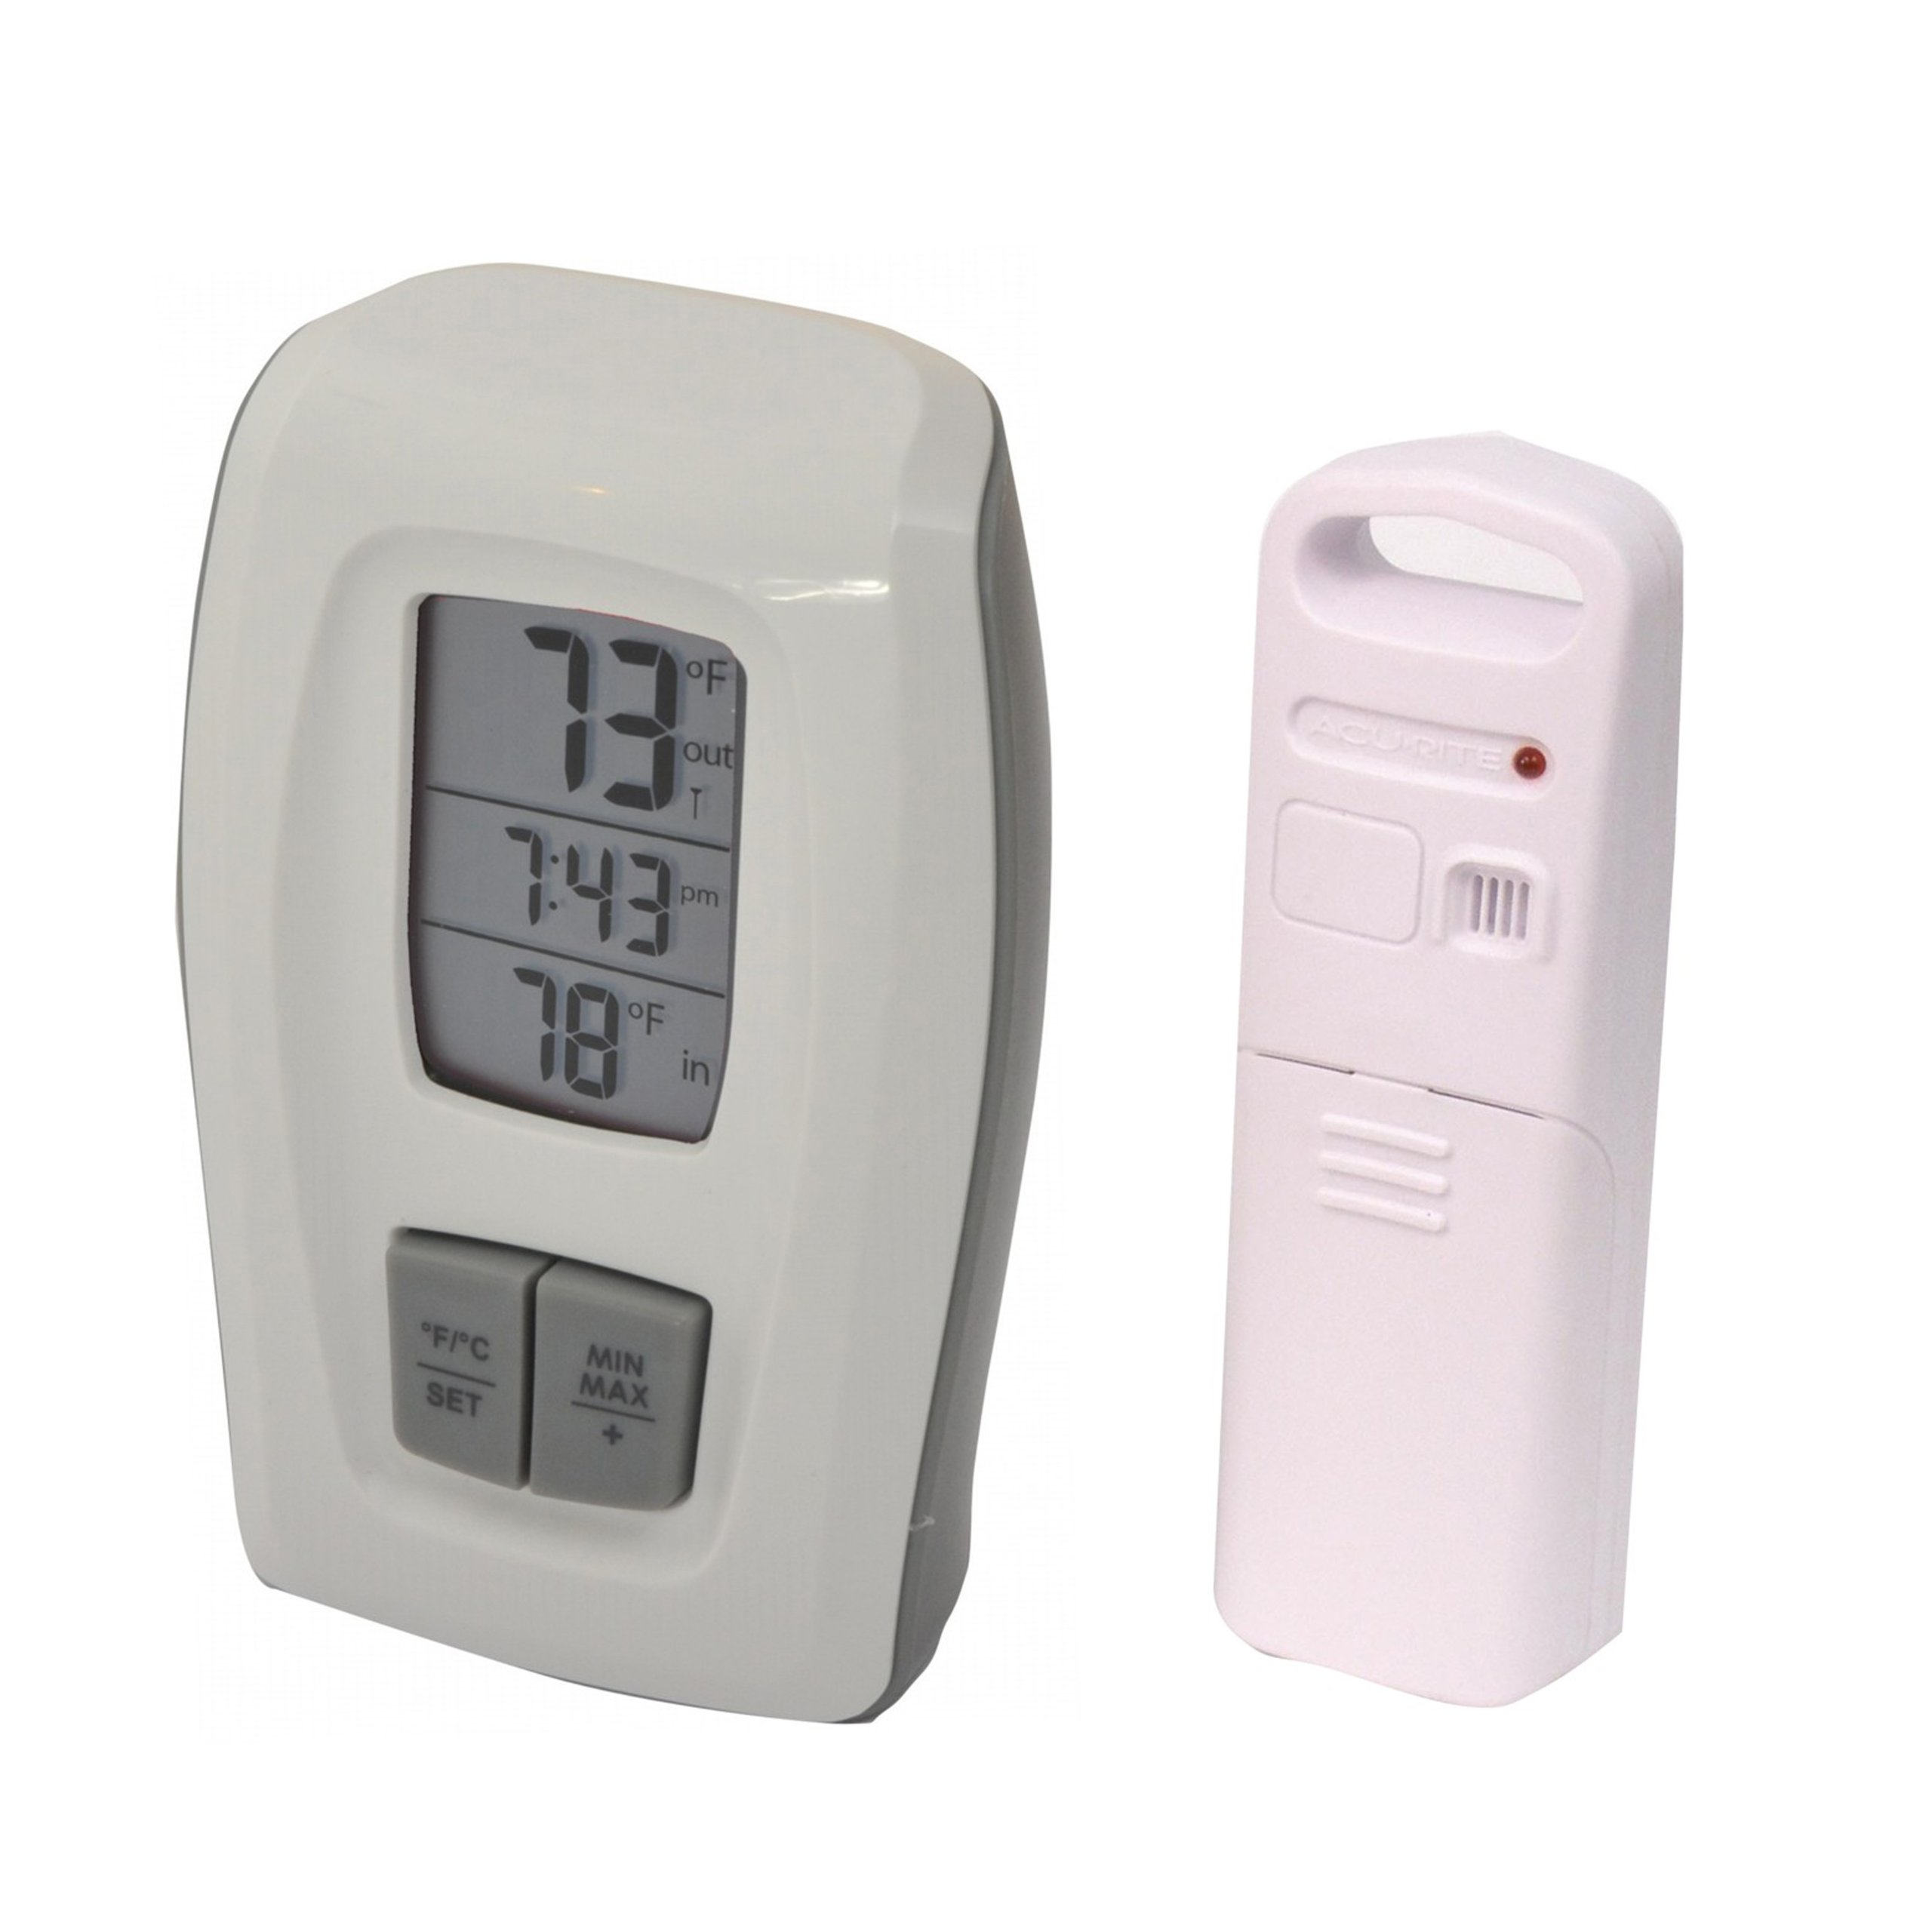 AcuRite 00418 Wireless Thermometer with Clock, White